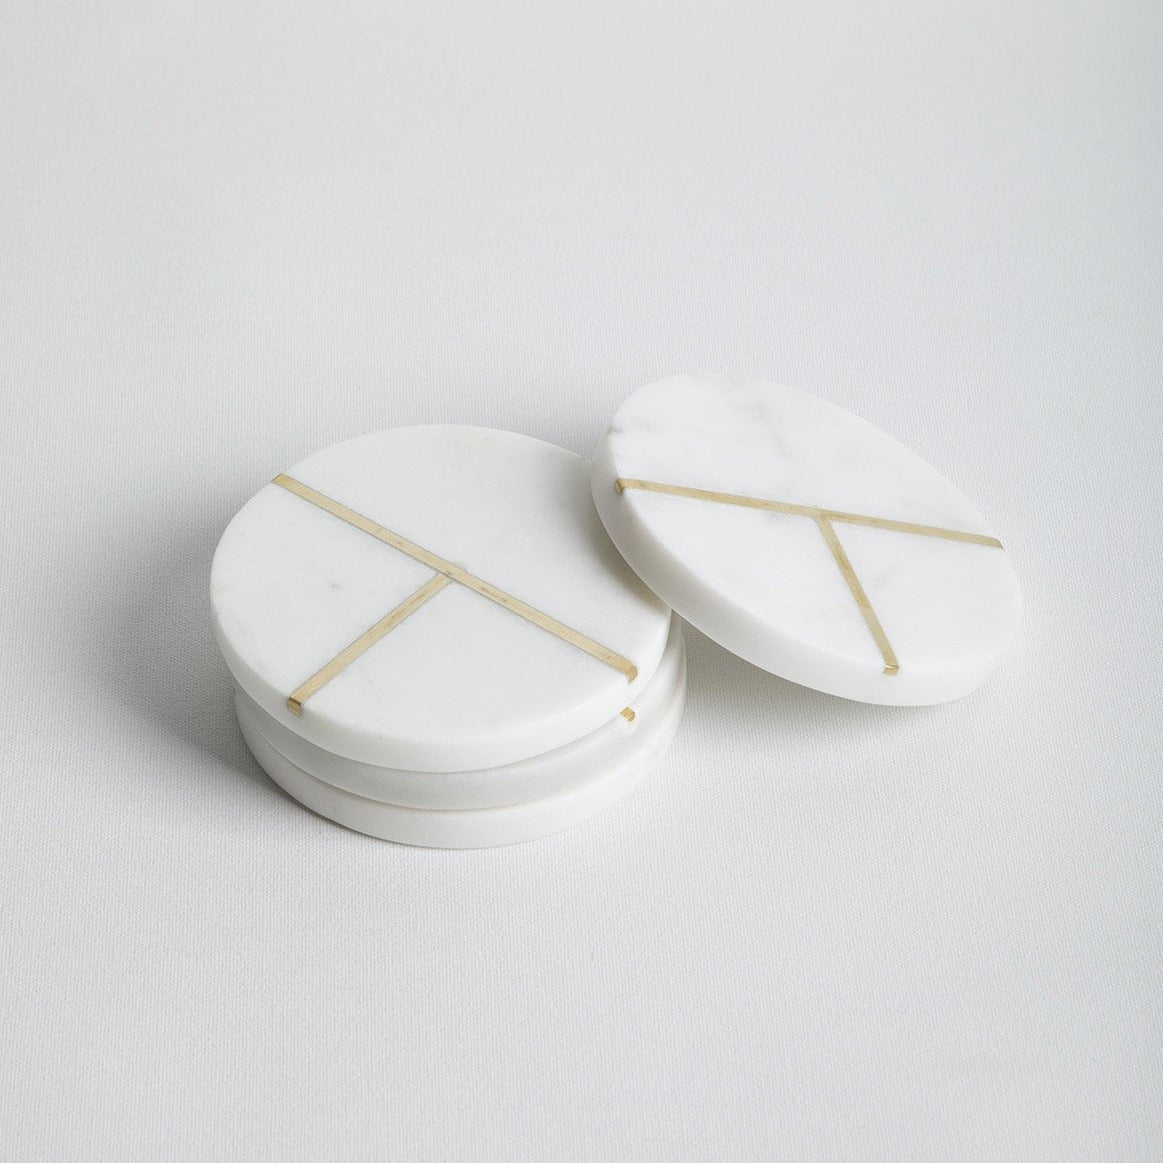 Aperture marble and brass coaster set- Picnic SF